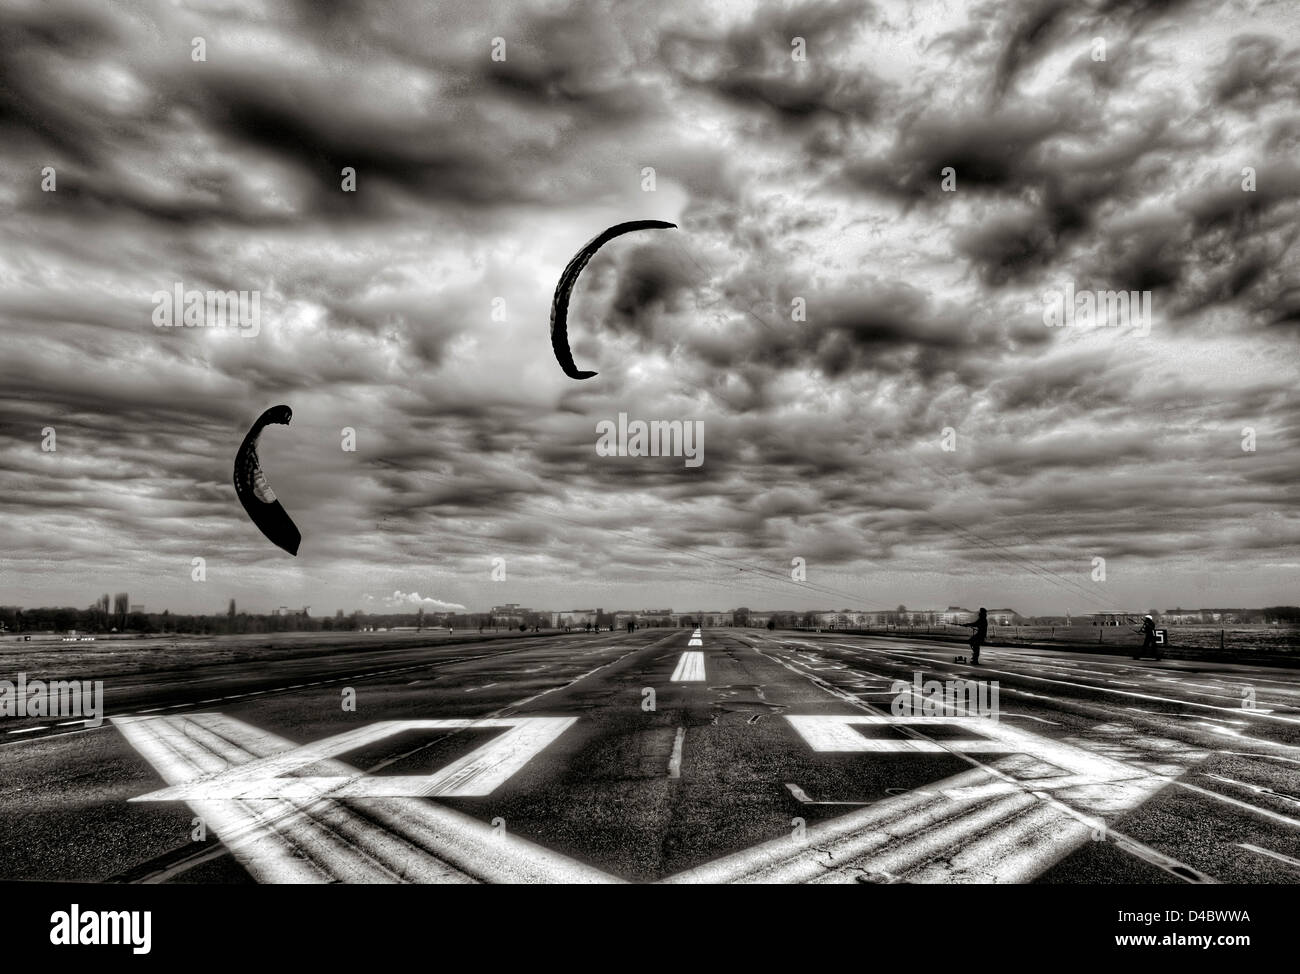 Kite boarding on the runway at the disused Tempelhof airport in Berlin - Stock Image